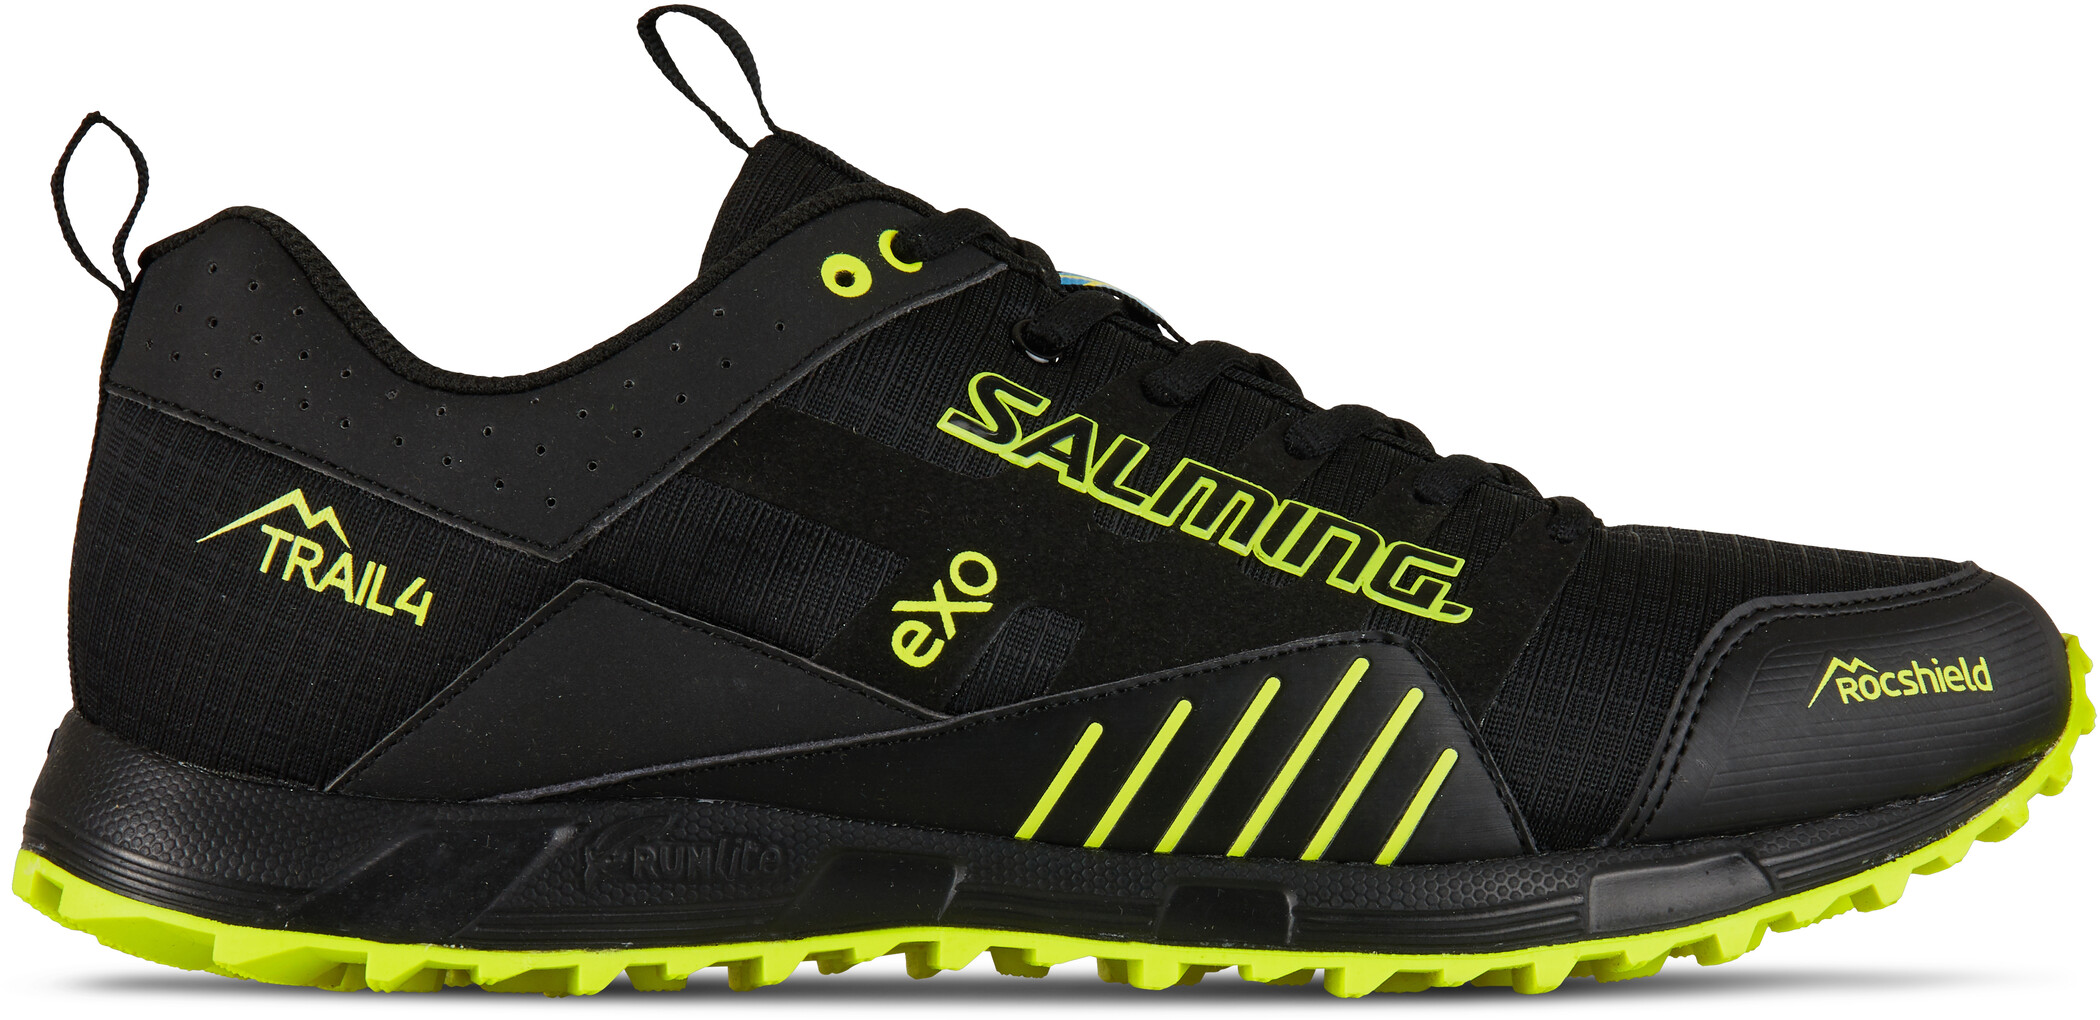 Salming Trail T4 Sko Herrer, black/safety yellow (2019) | Shoes and overlays